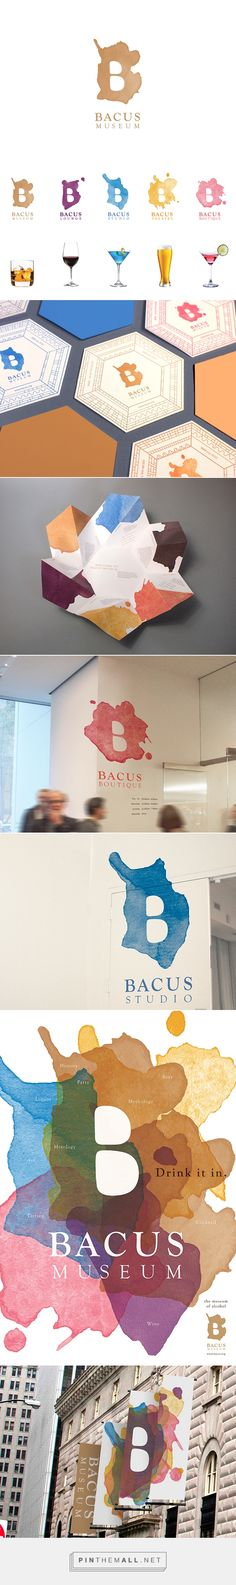 BACUS MUSEUM on Behance | Fivestar Branding – Design and Branding Agency &…